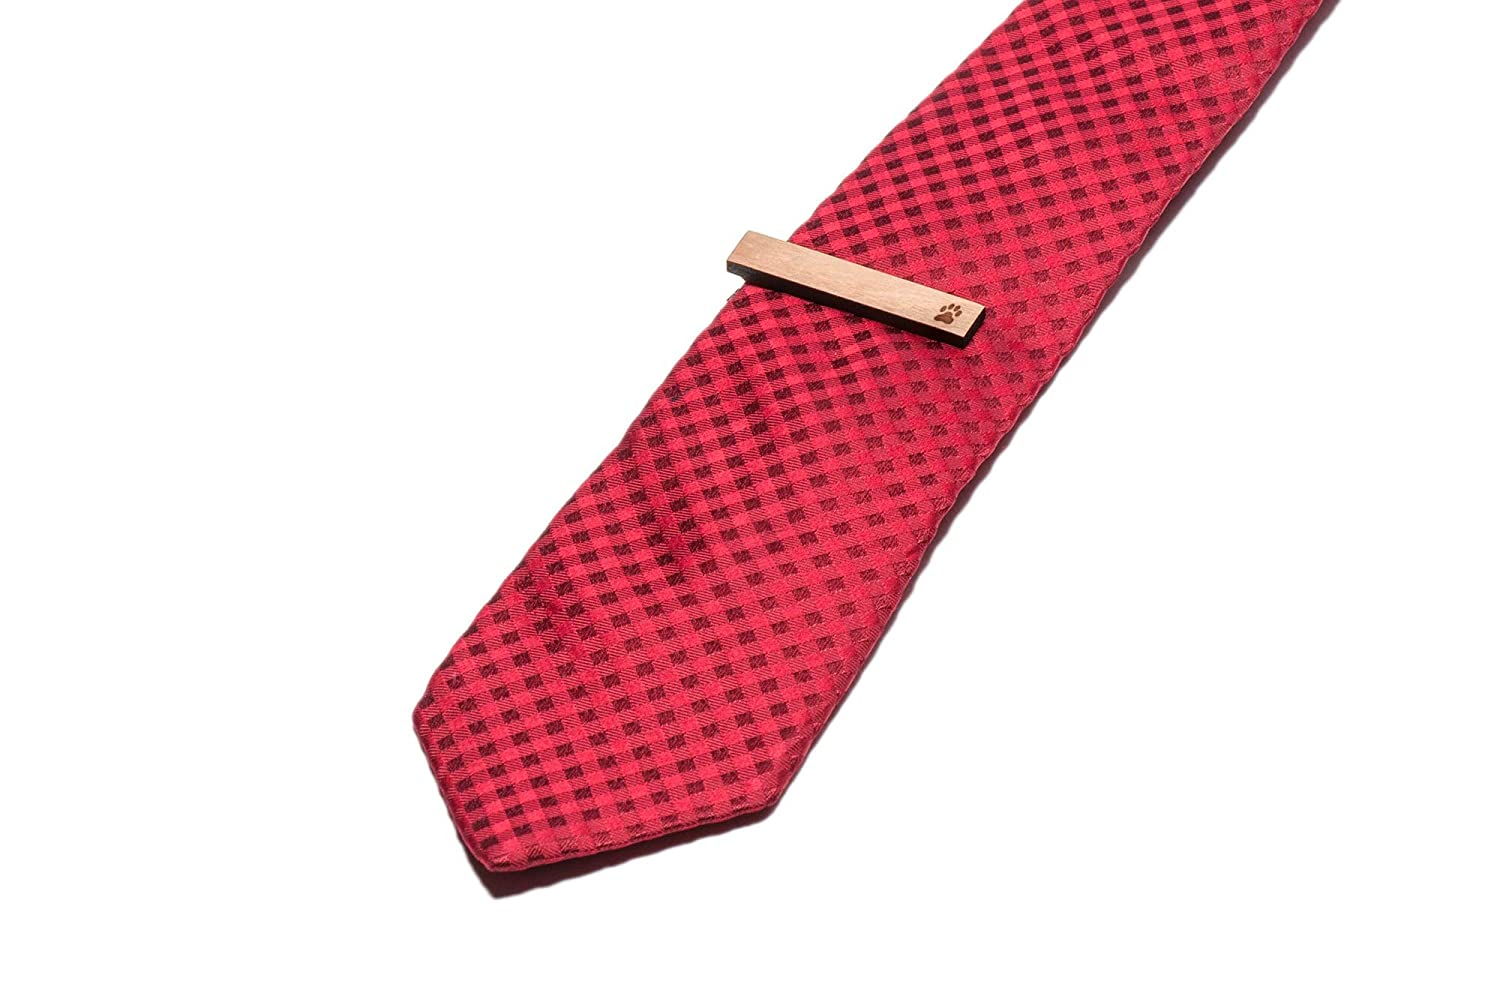 Wooden Accessories Company Wooden Tie Clips with Laser Engraved Animal Footprint Design Cherry Wood Tie Bar Engraved in The USA